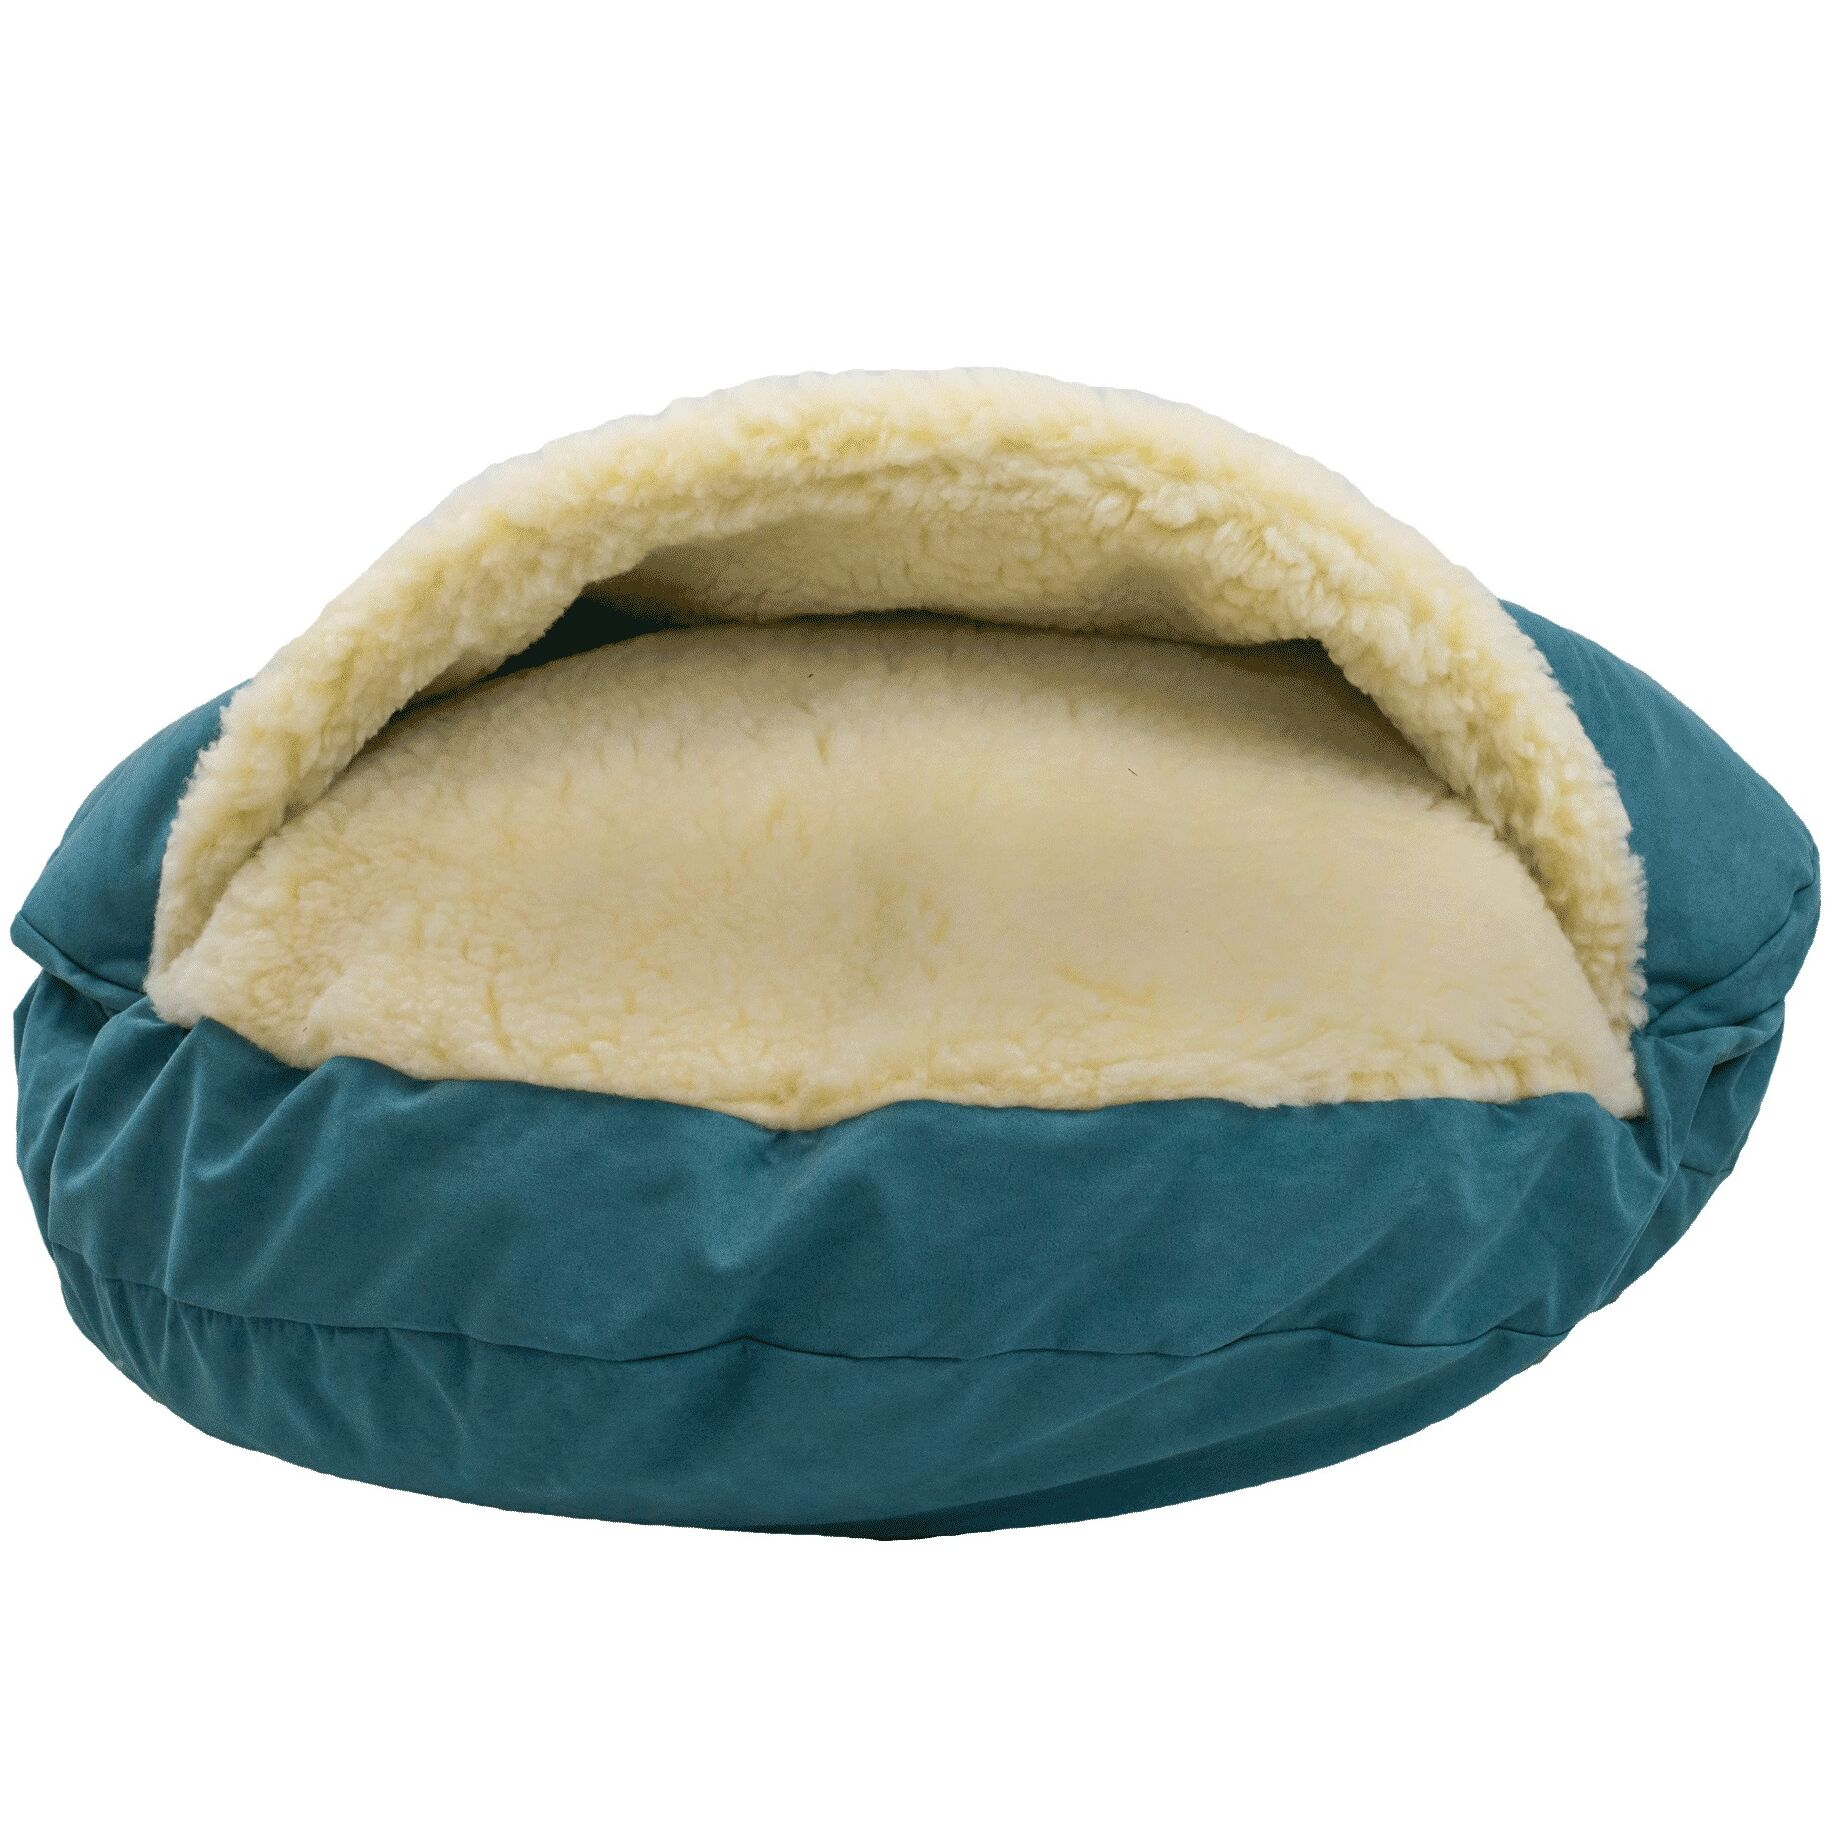 Orthopedic Luxury Cozy Cave Hooded Dog Bed Color: Marine, Size: Small (25